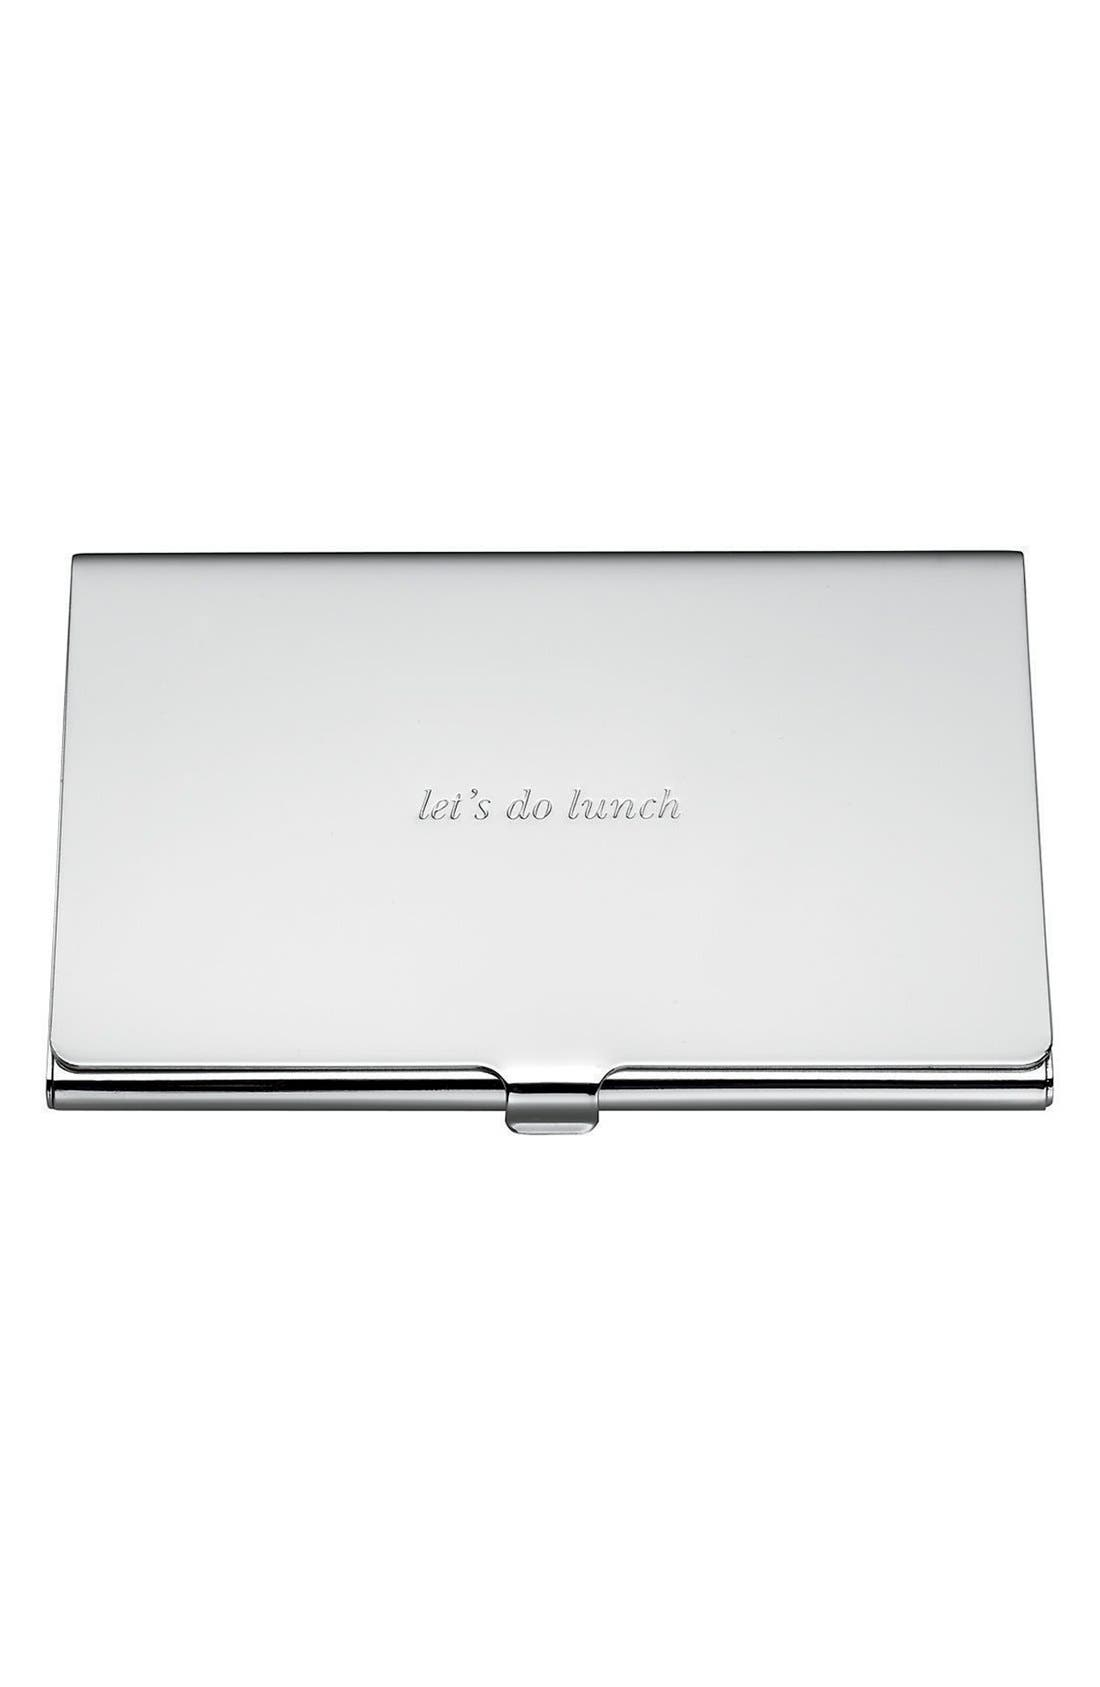 kate spade new york let's do lunch business card holder